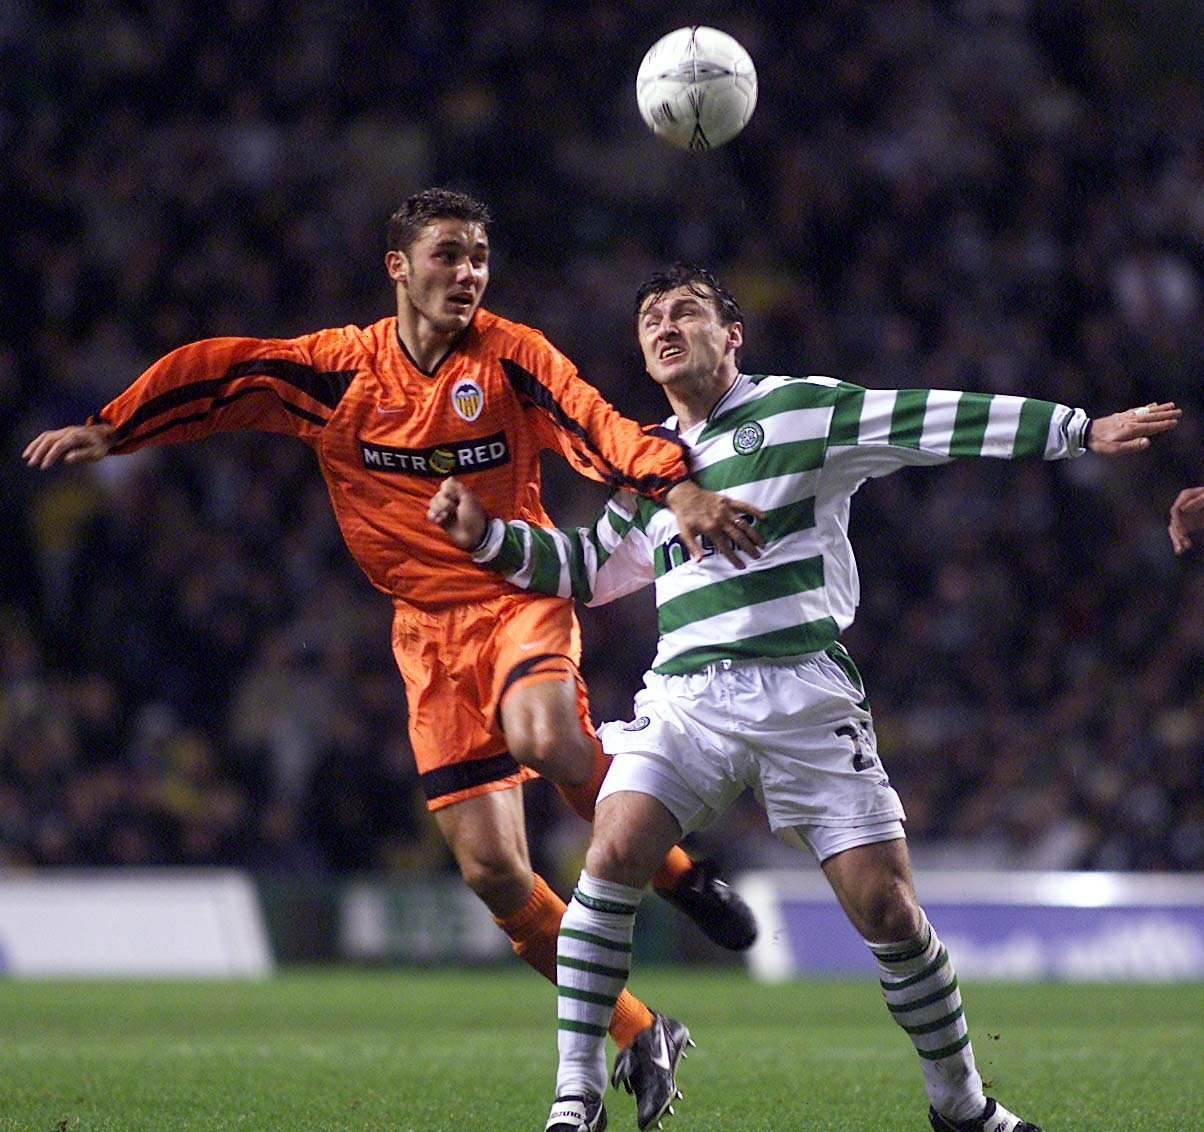 Roberto Ayala edges out Lubomir Moravcik when Valencia beat Celtic on penalties in 2001.